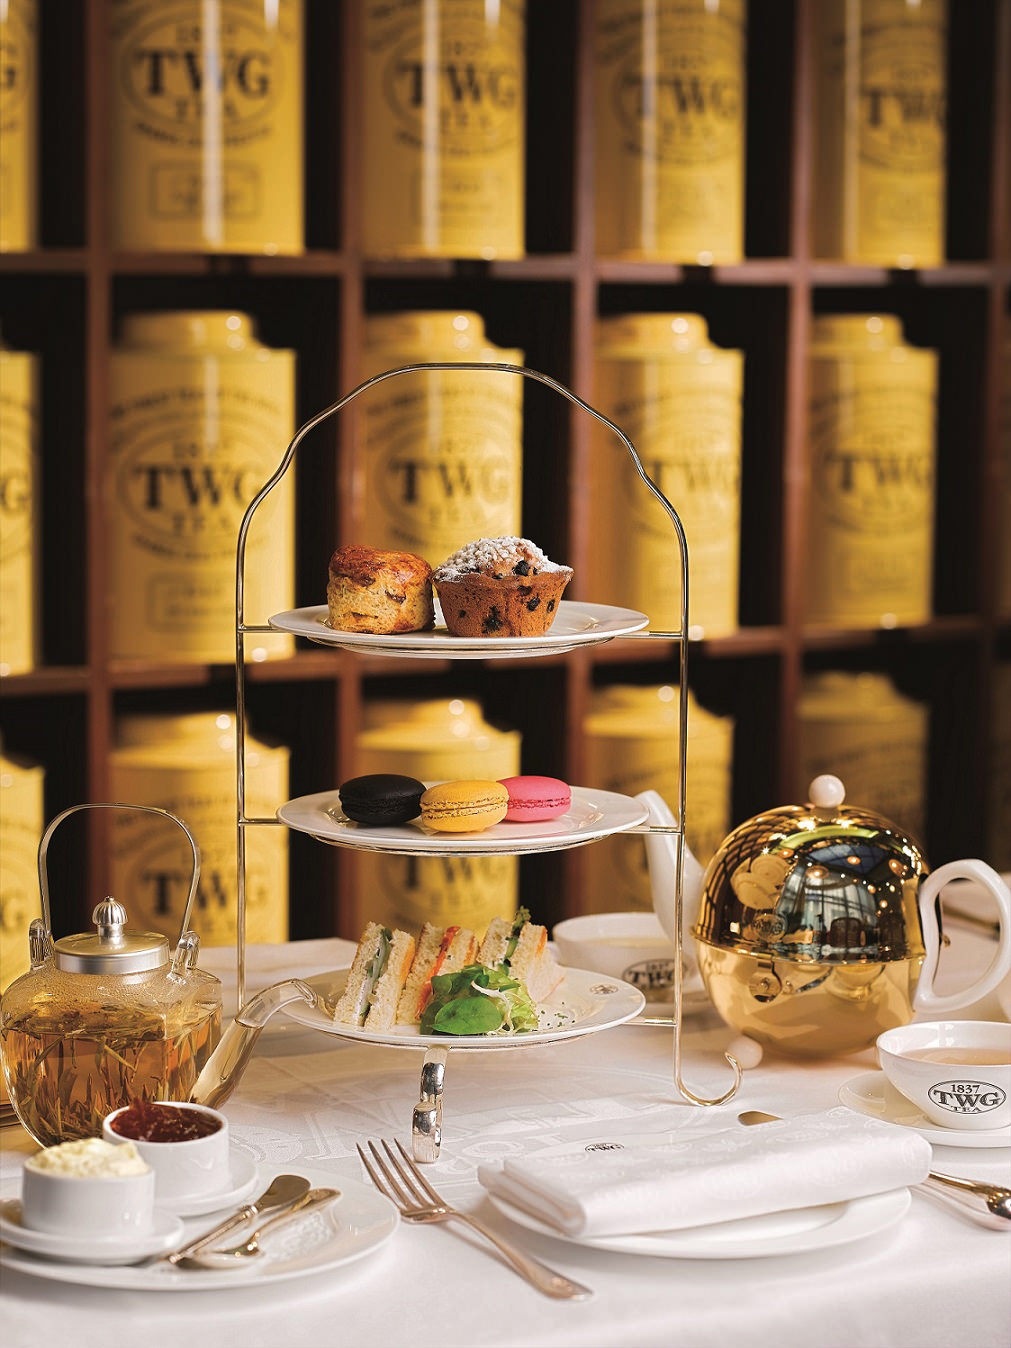 A Leisure All Day Hi Tea At Twg Tea Valiram Group